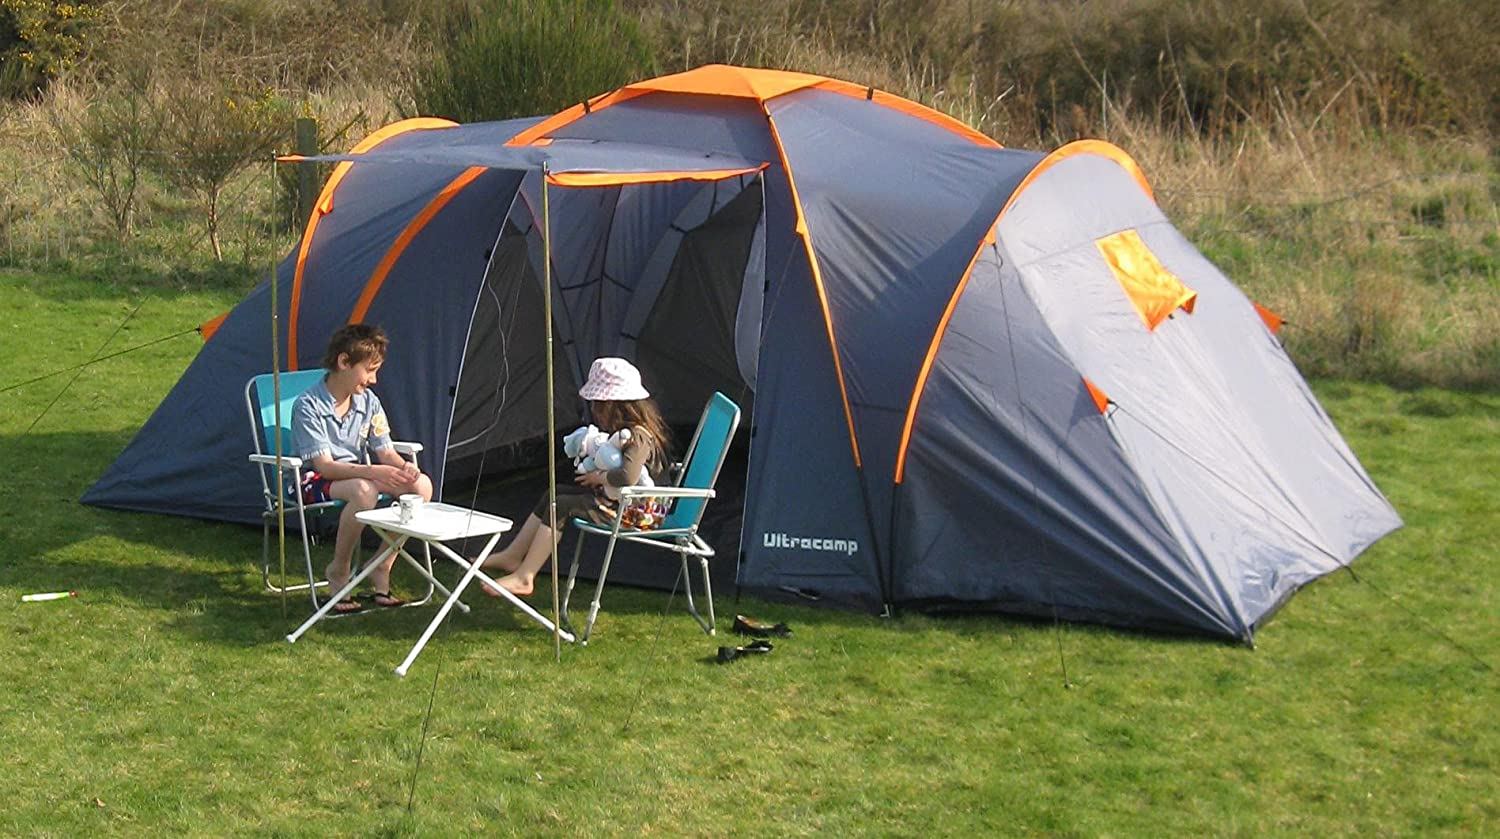 Ultrac& Churchill 6 Berth / Man Large Family C&ing Tent Amazon.co.uk Sports u0026 Outdoors & Ultracamp Churchill 6 Berth / Man Large Family Camping Tent ...